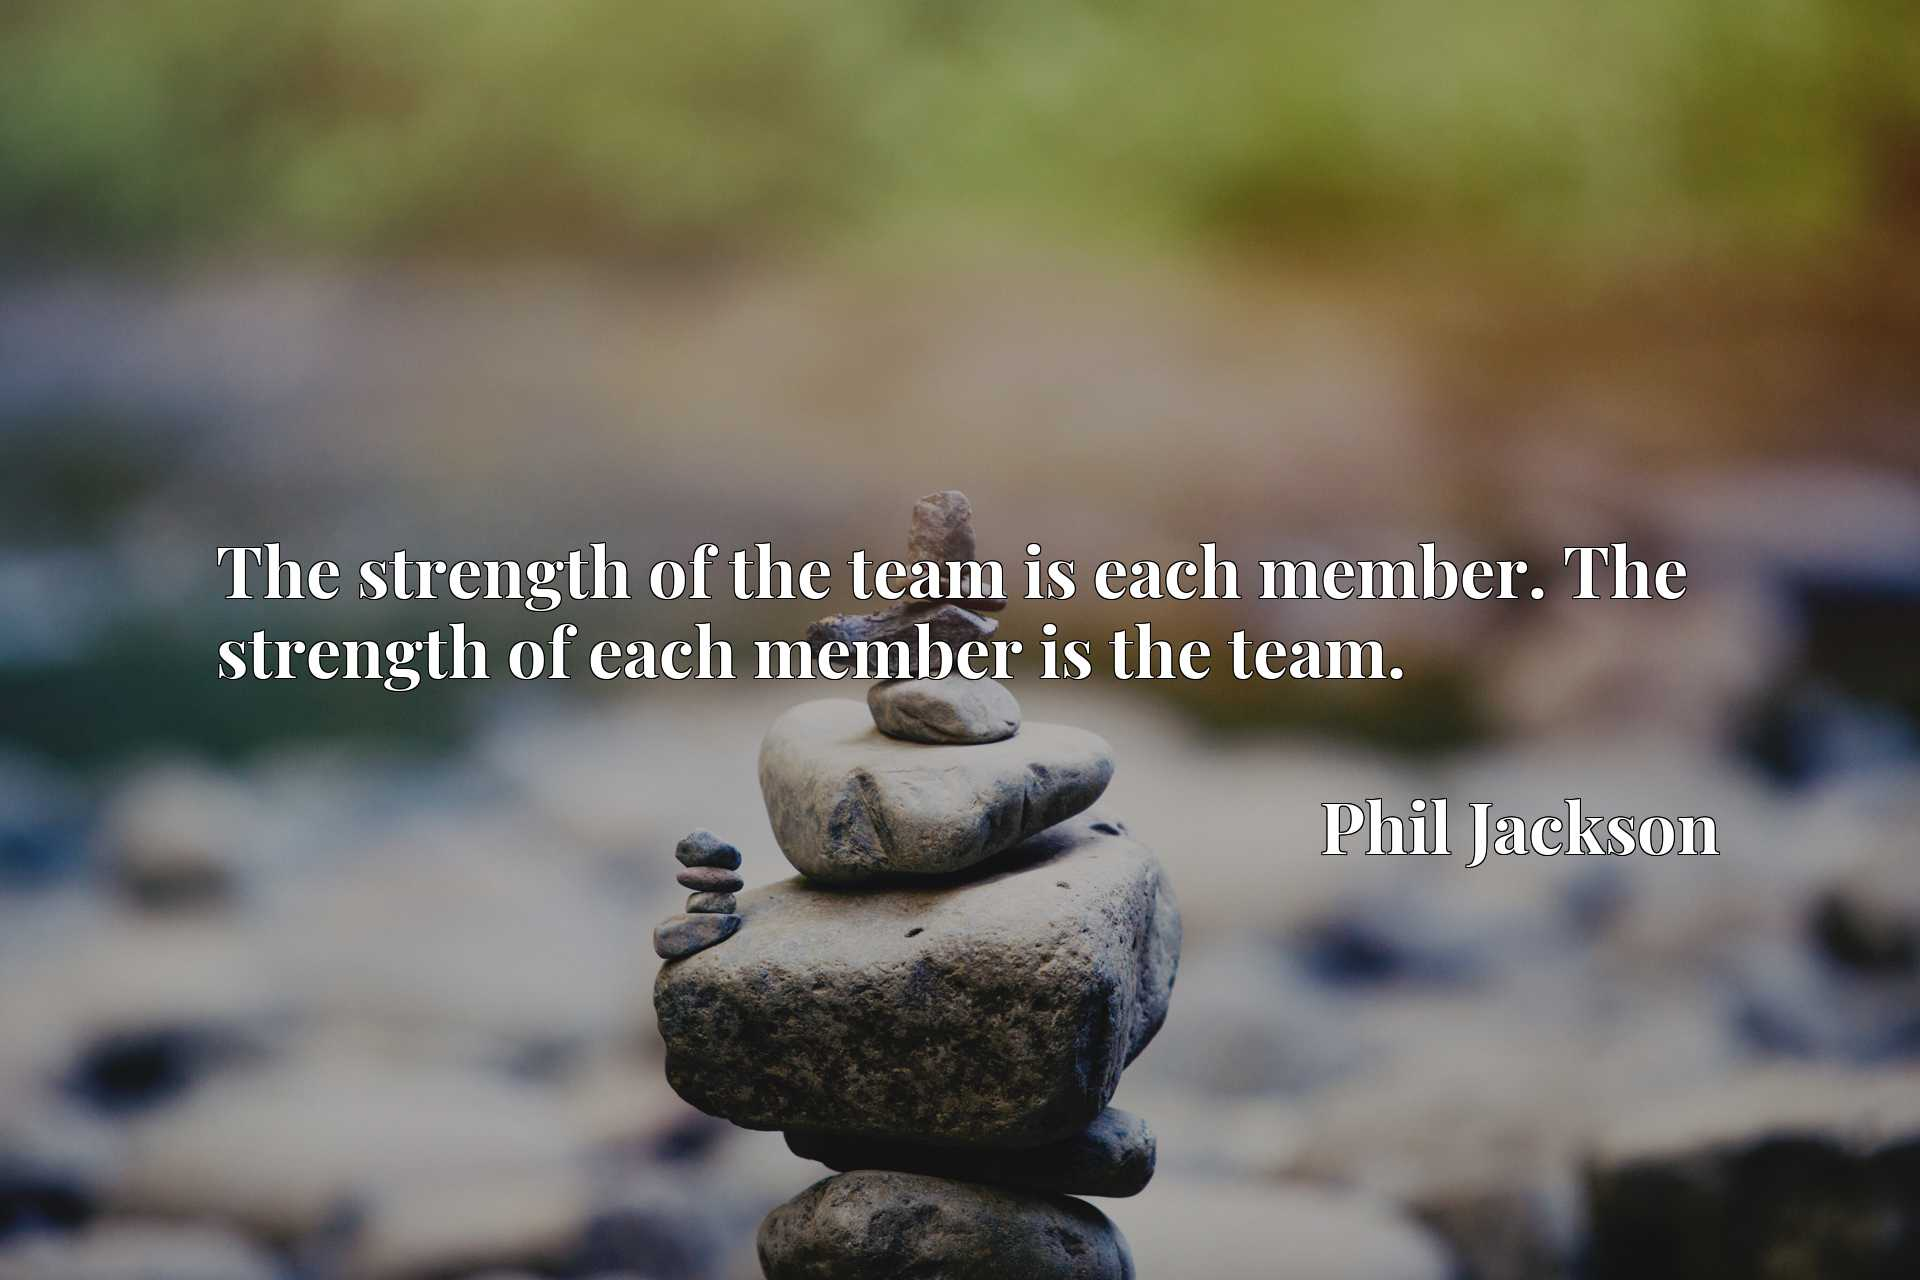 The strength of the team is each member. The strength of each member is the team.